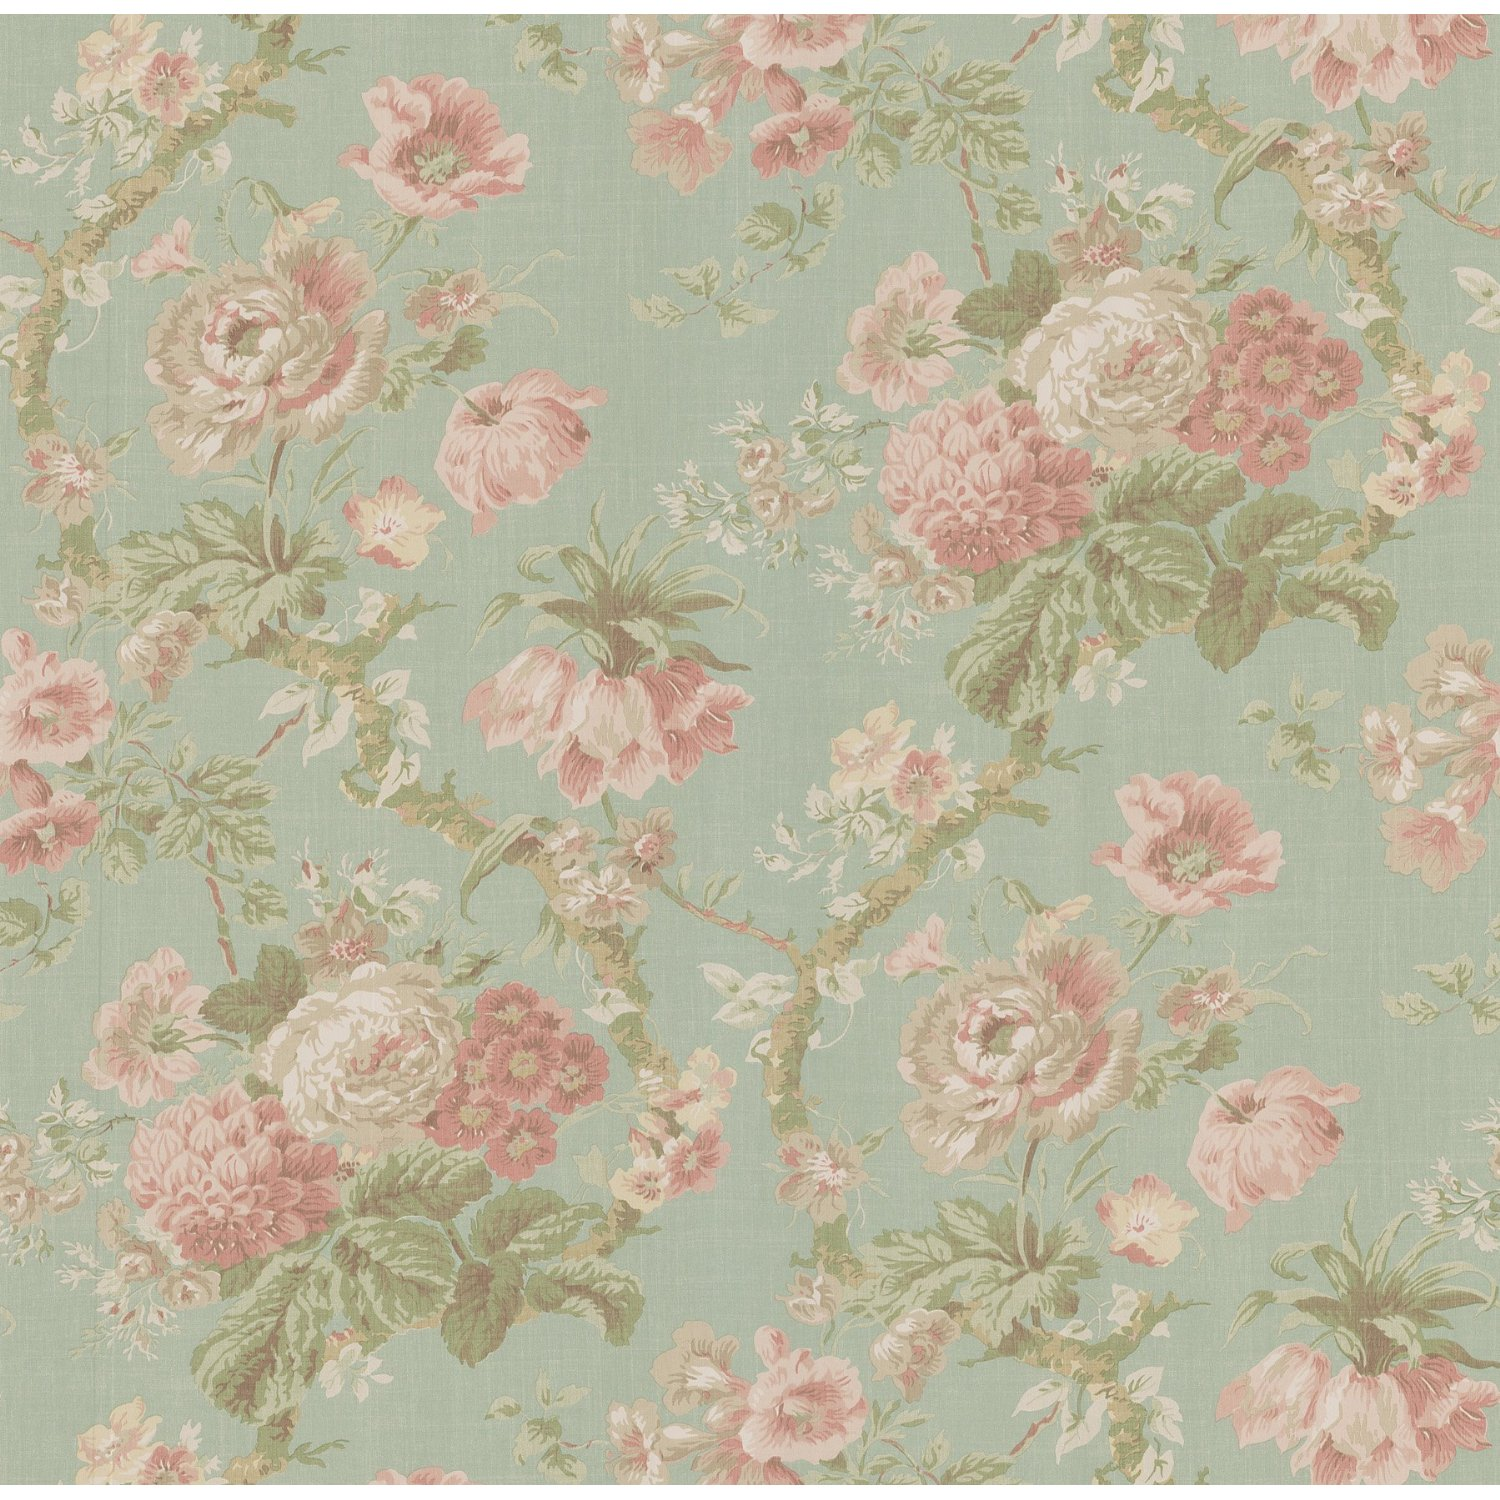 Vintage-Flowers-wallpaper-wp4210516